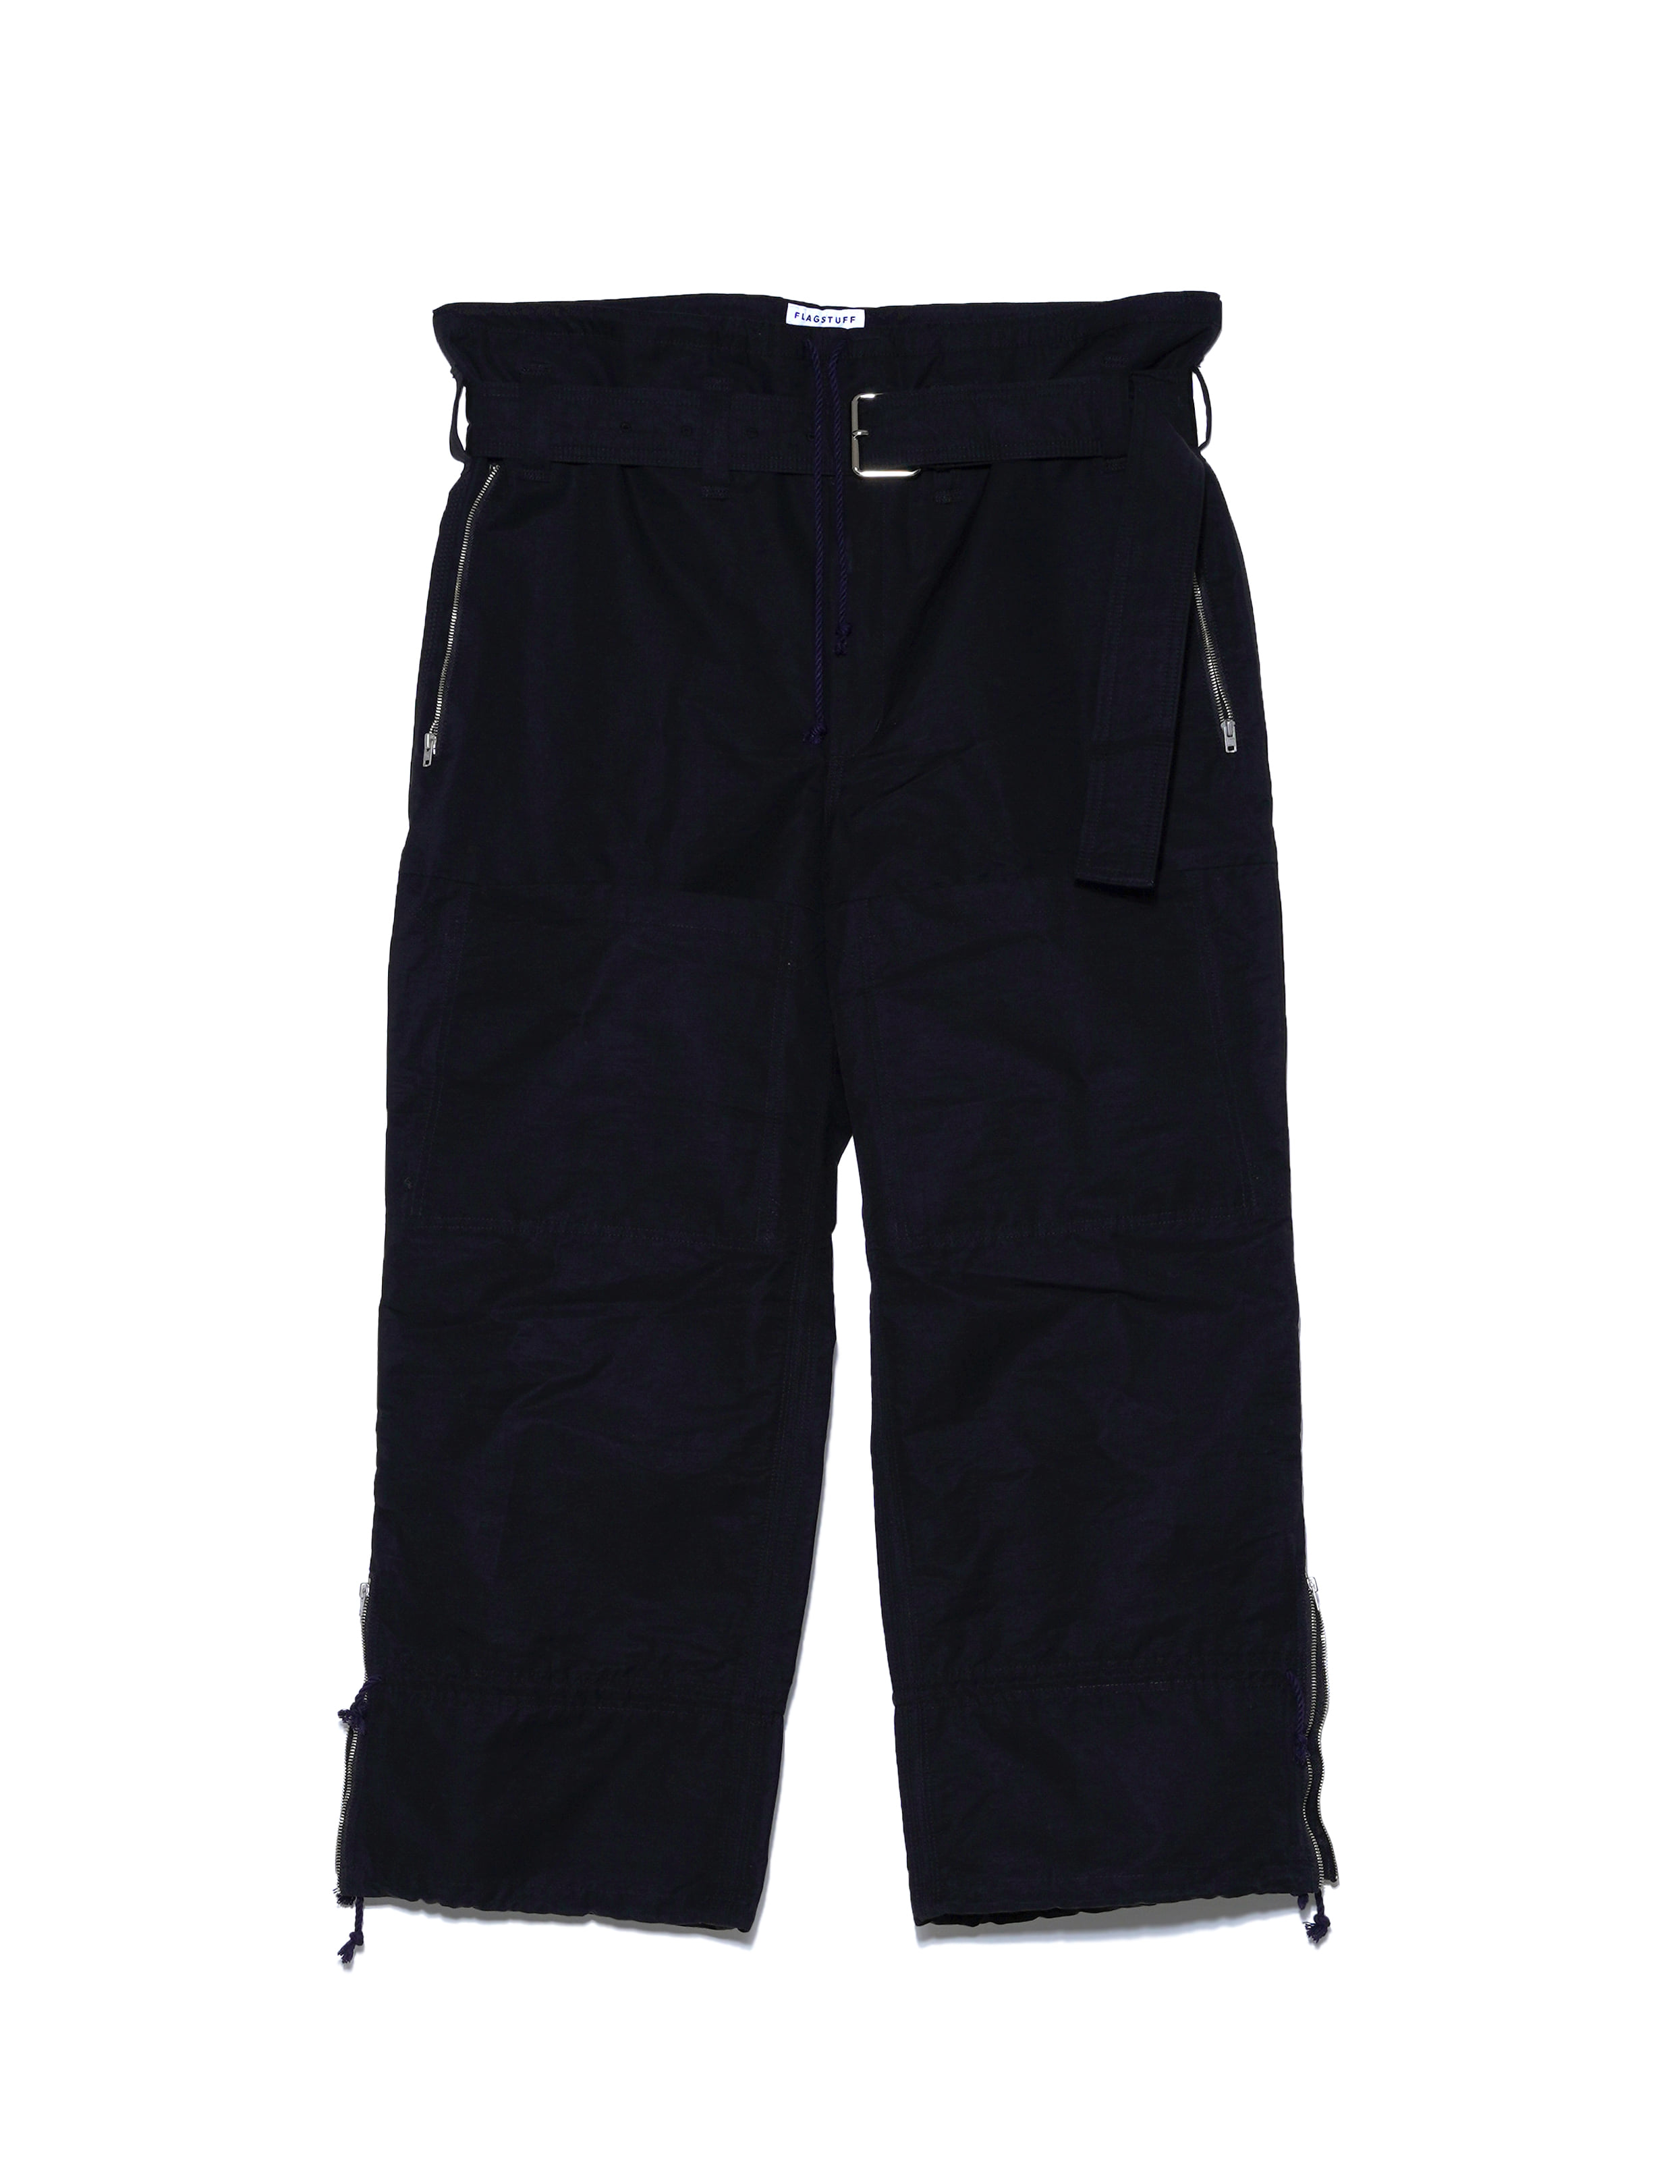 FLIGHT PANTS (BLACK)